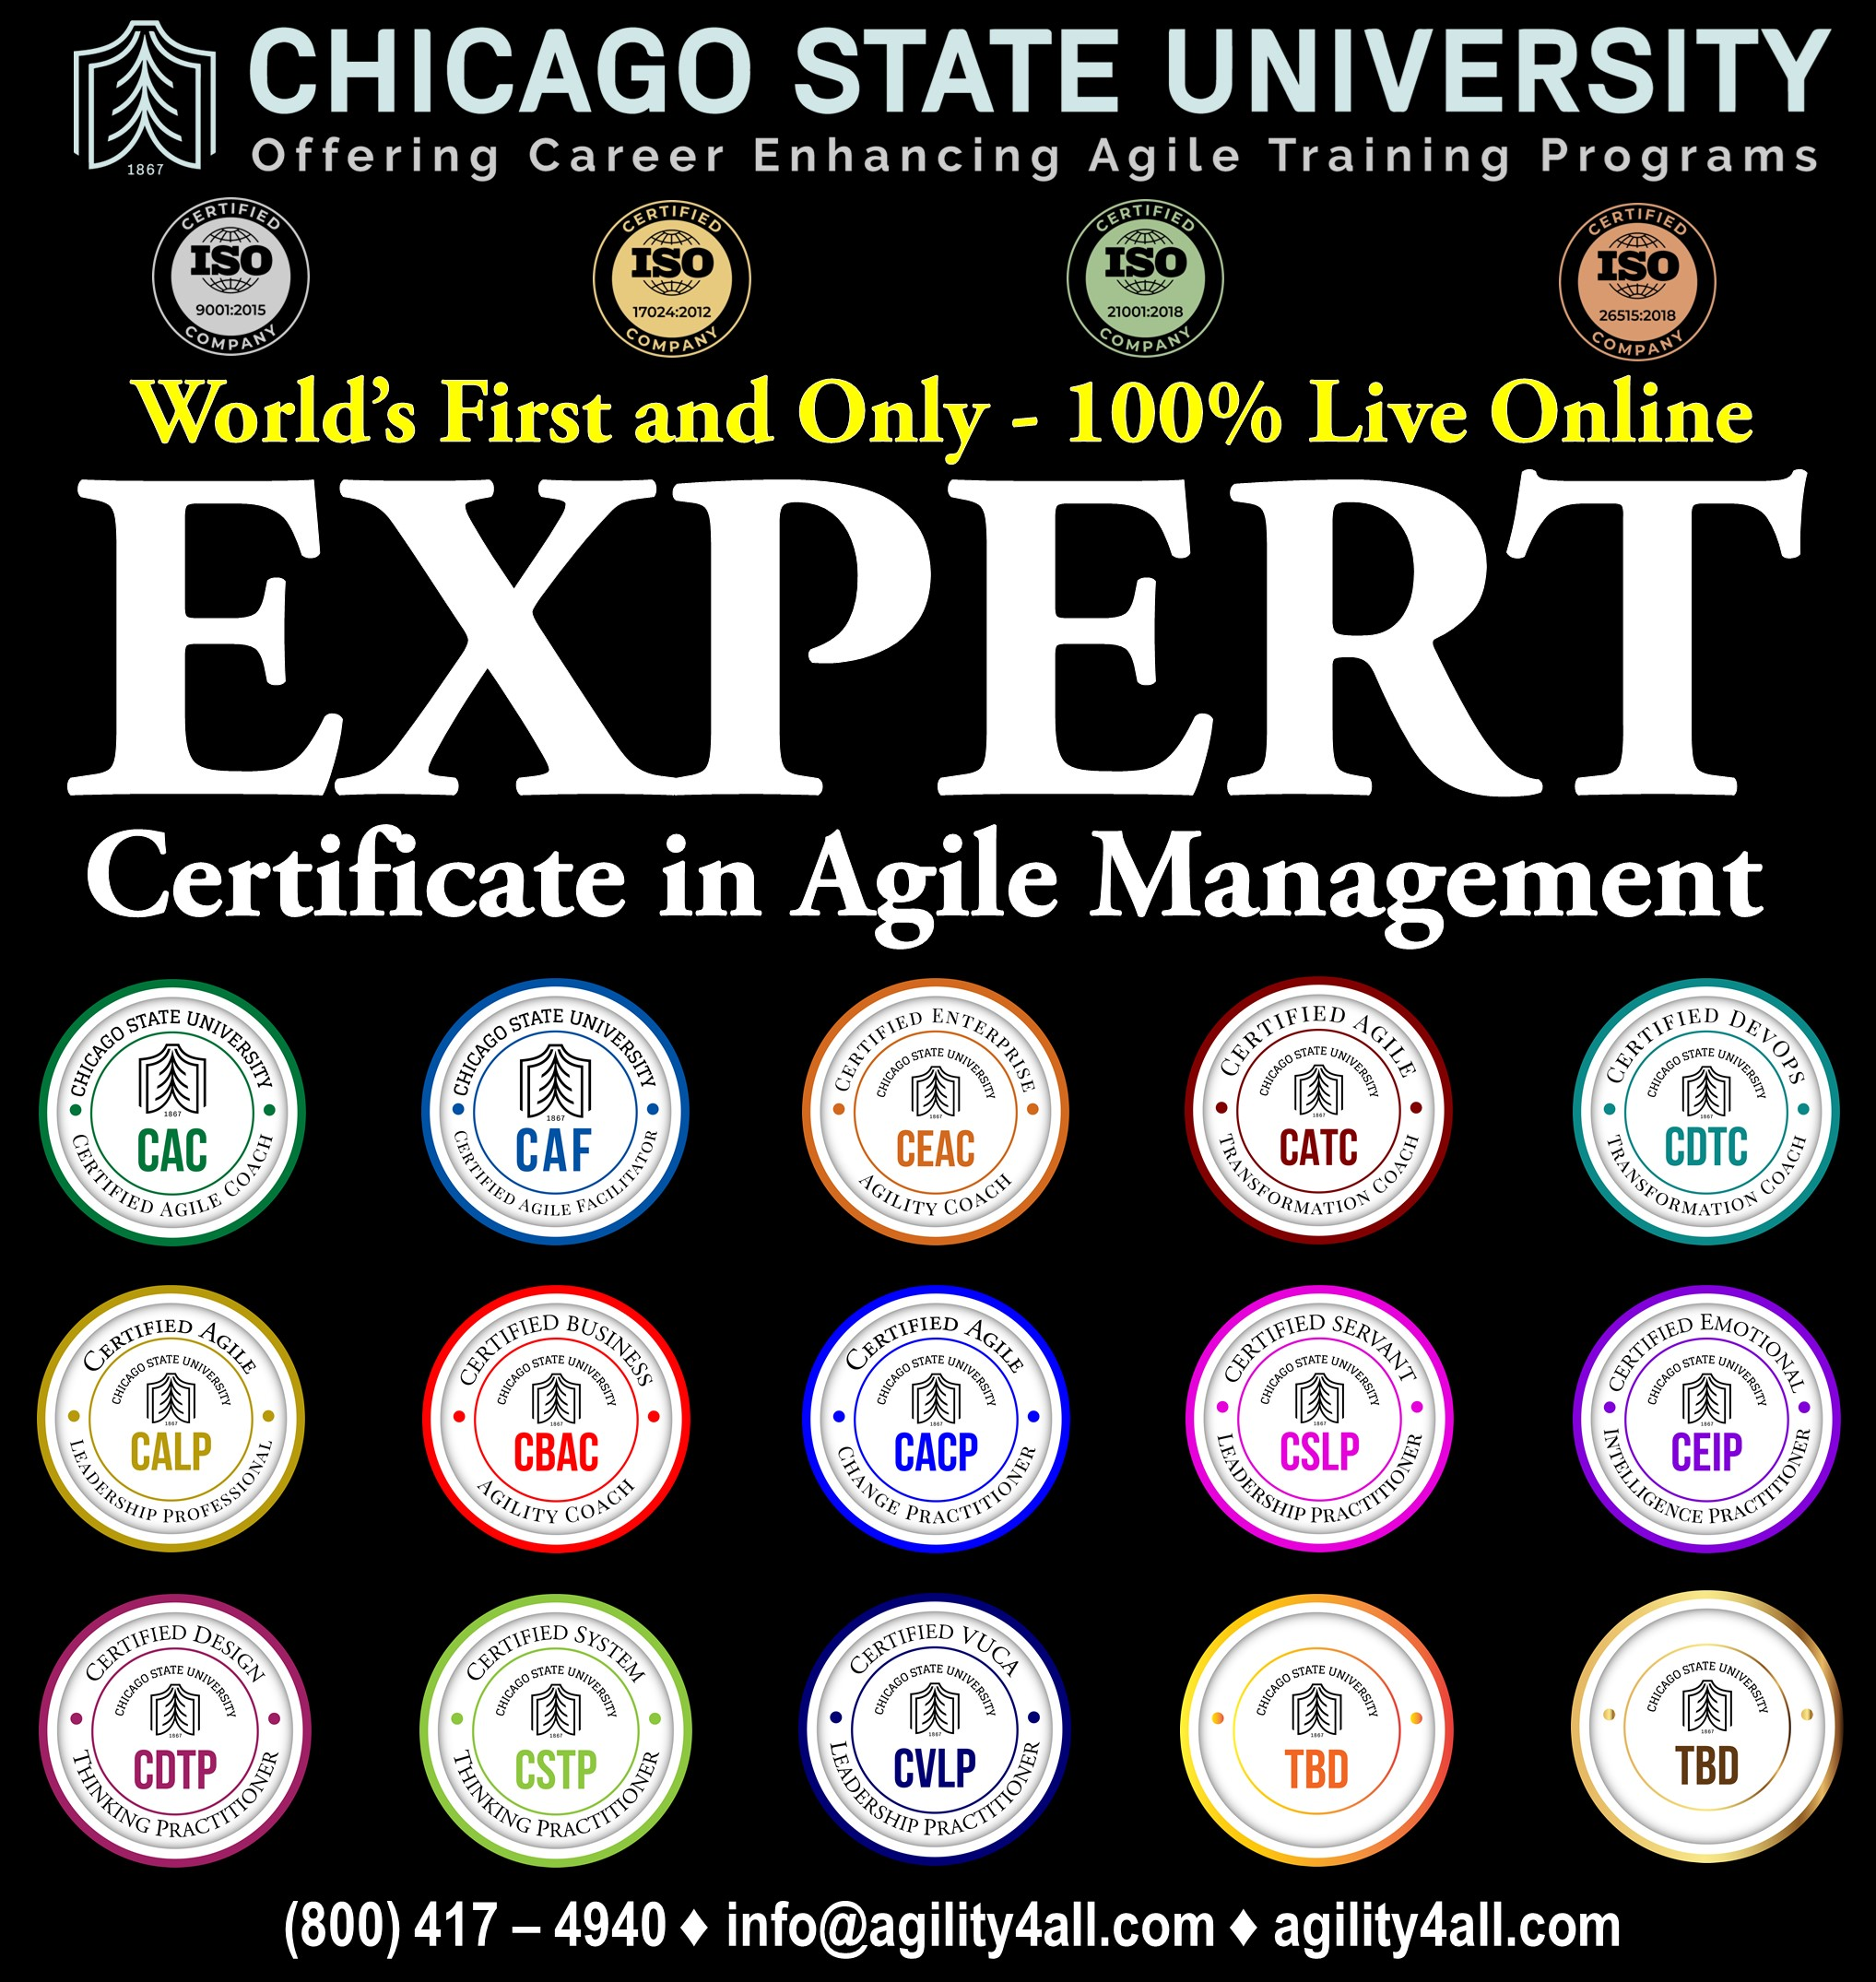 Expert Certificate in Agile Management (ECAM) from Chicago State University